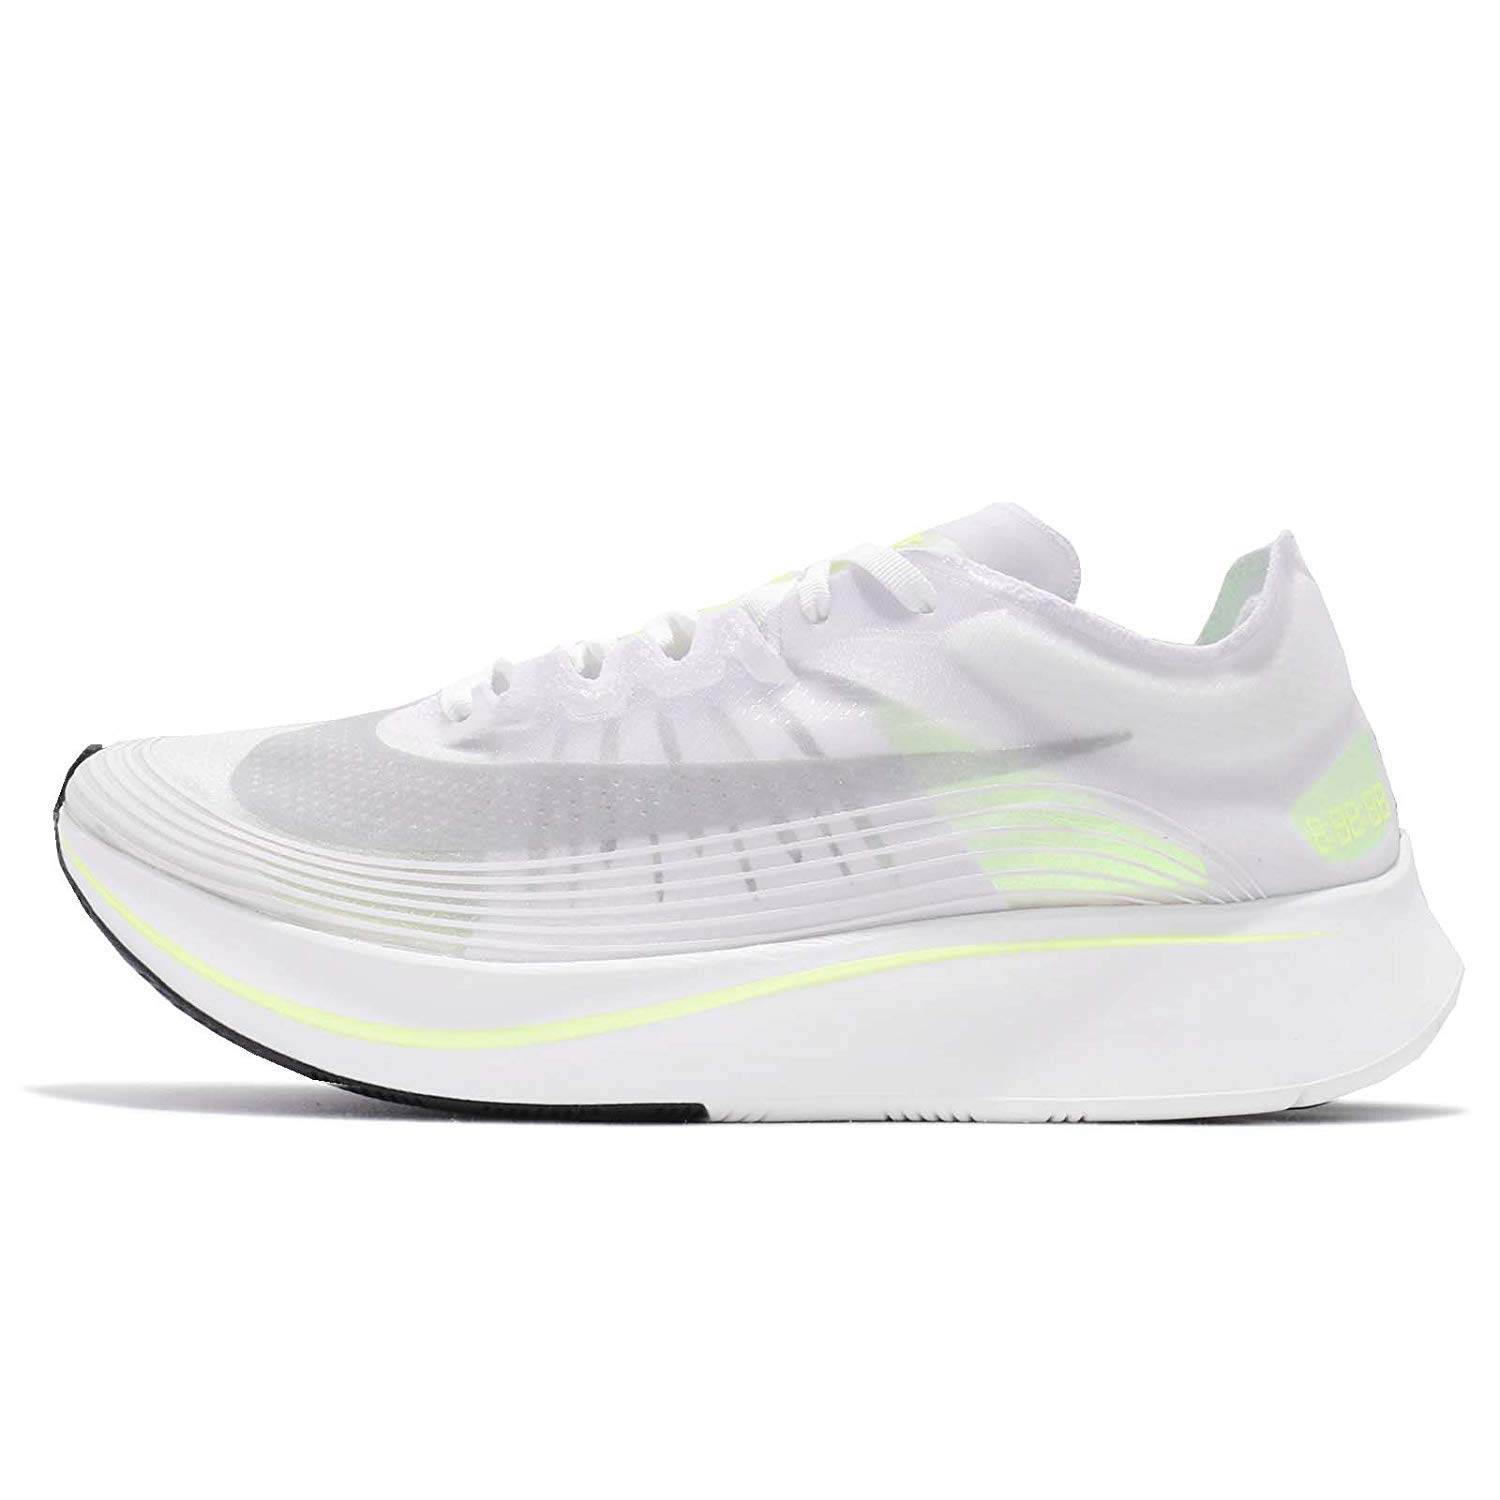 WHITE   VOLT GLOW-SUMMIT WHITE Nike Mens Zoom Fly SP Lightweight Trainer Running shoes